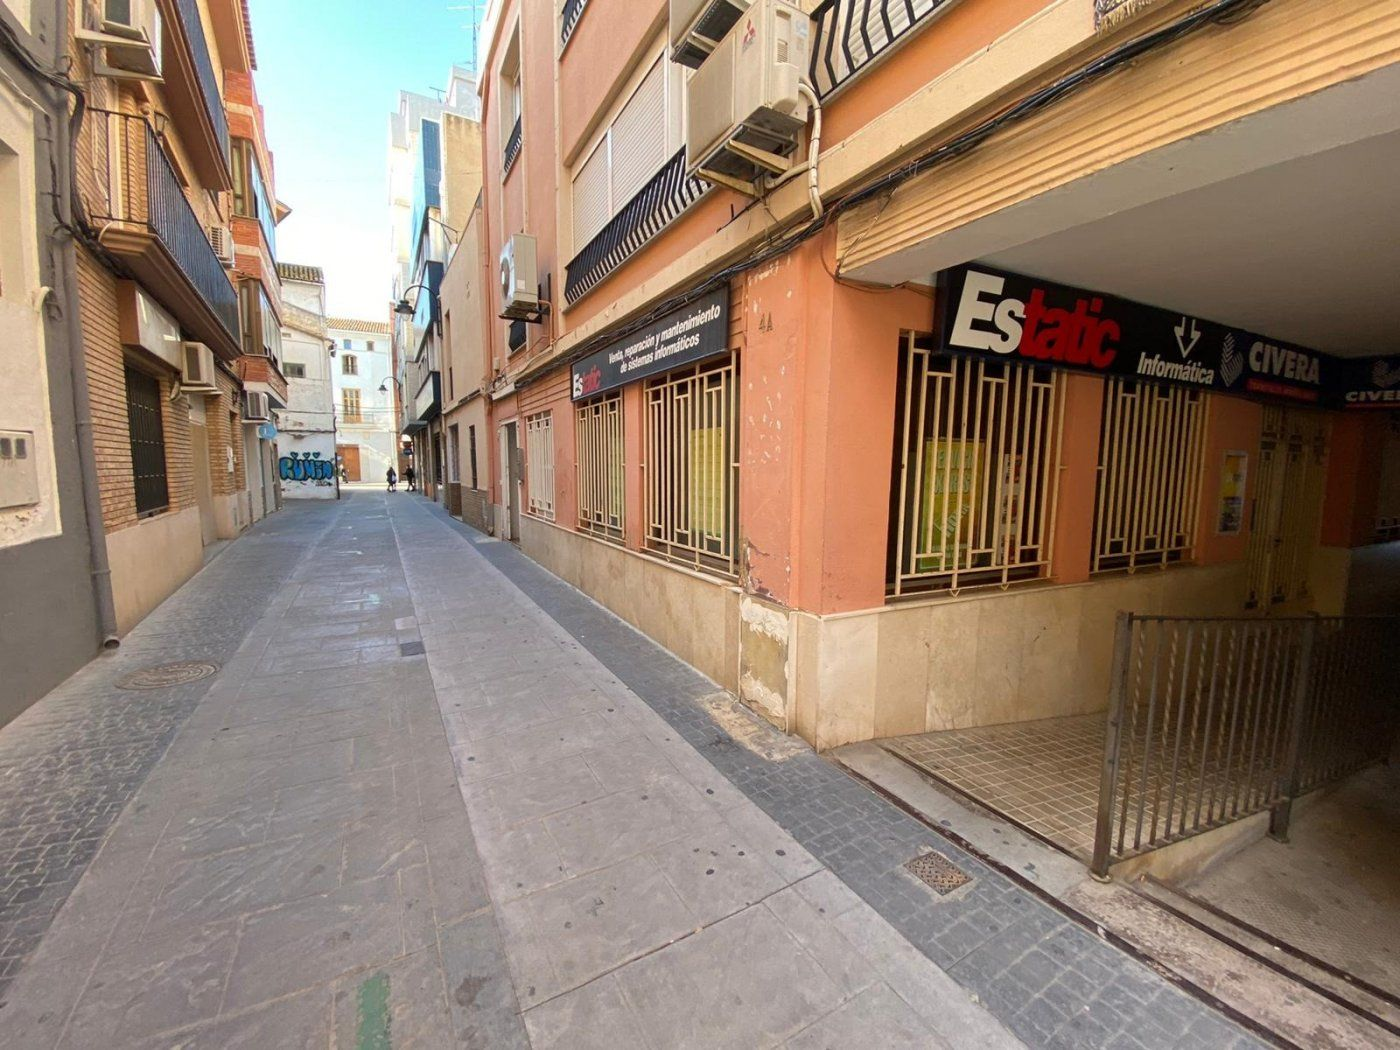 Affitto Locale commerciale in Massamagrell. Se alquila local comercial en massamagrell